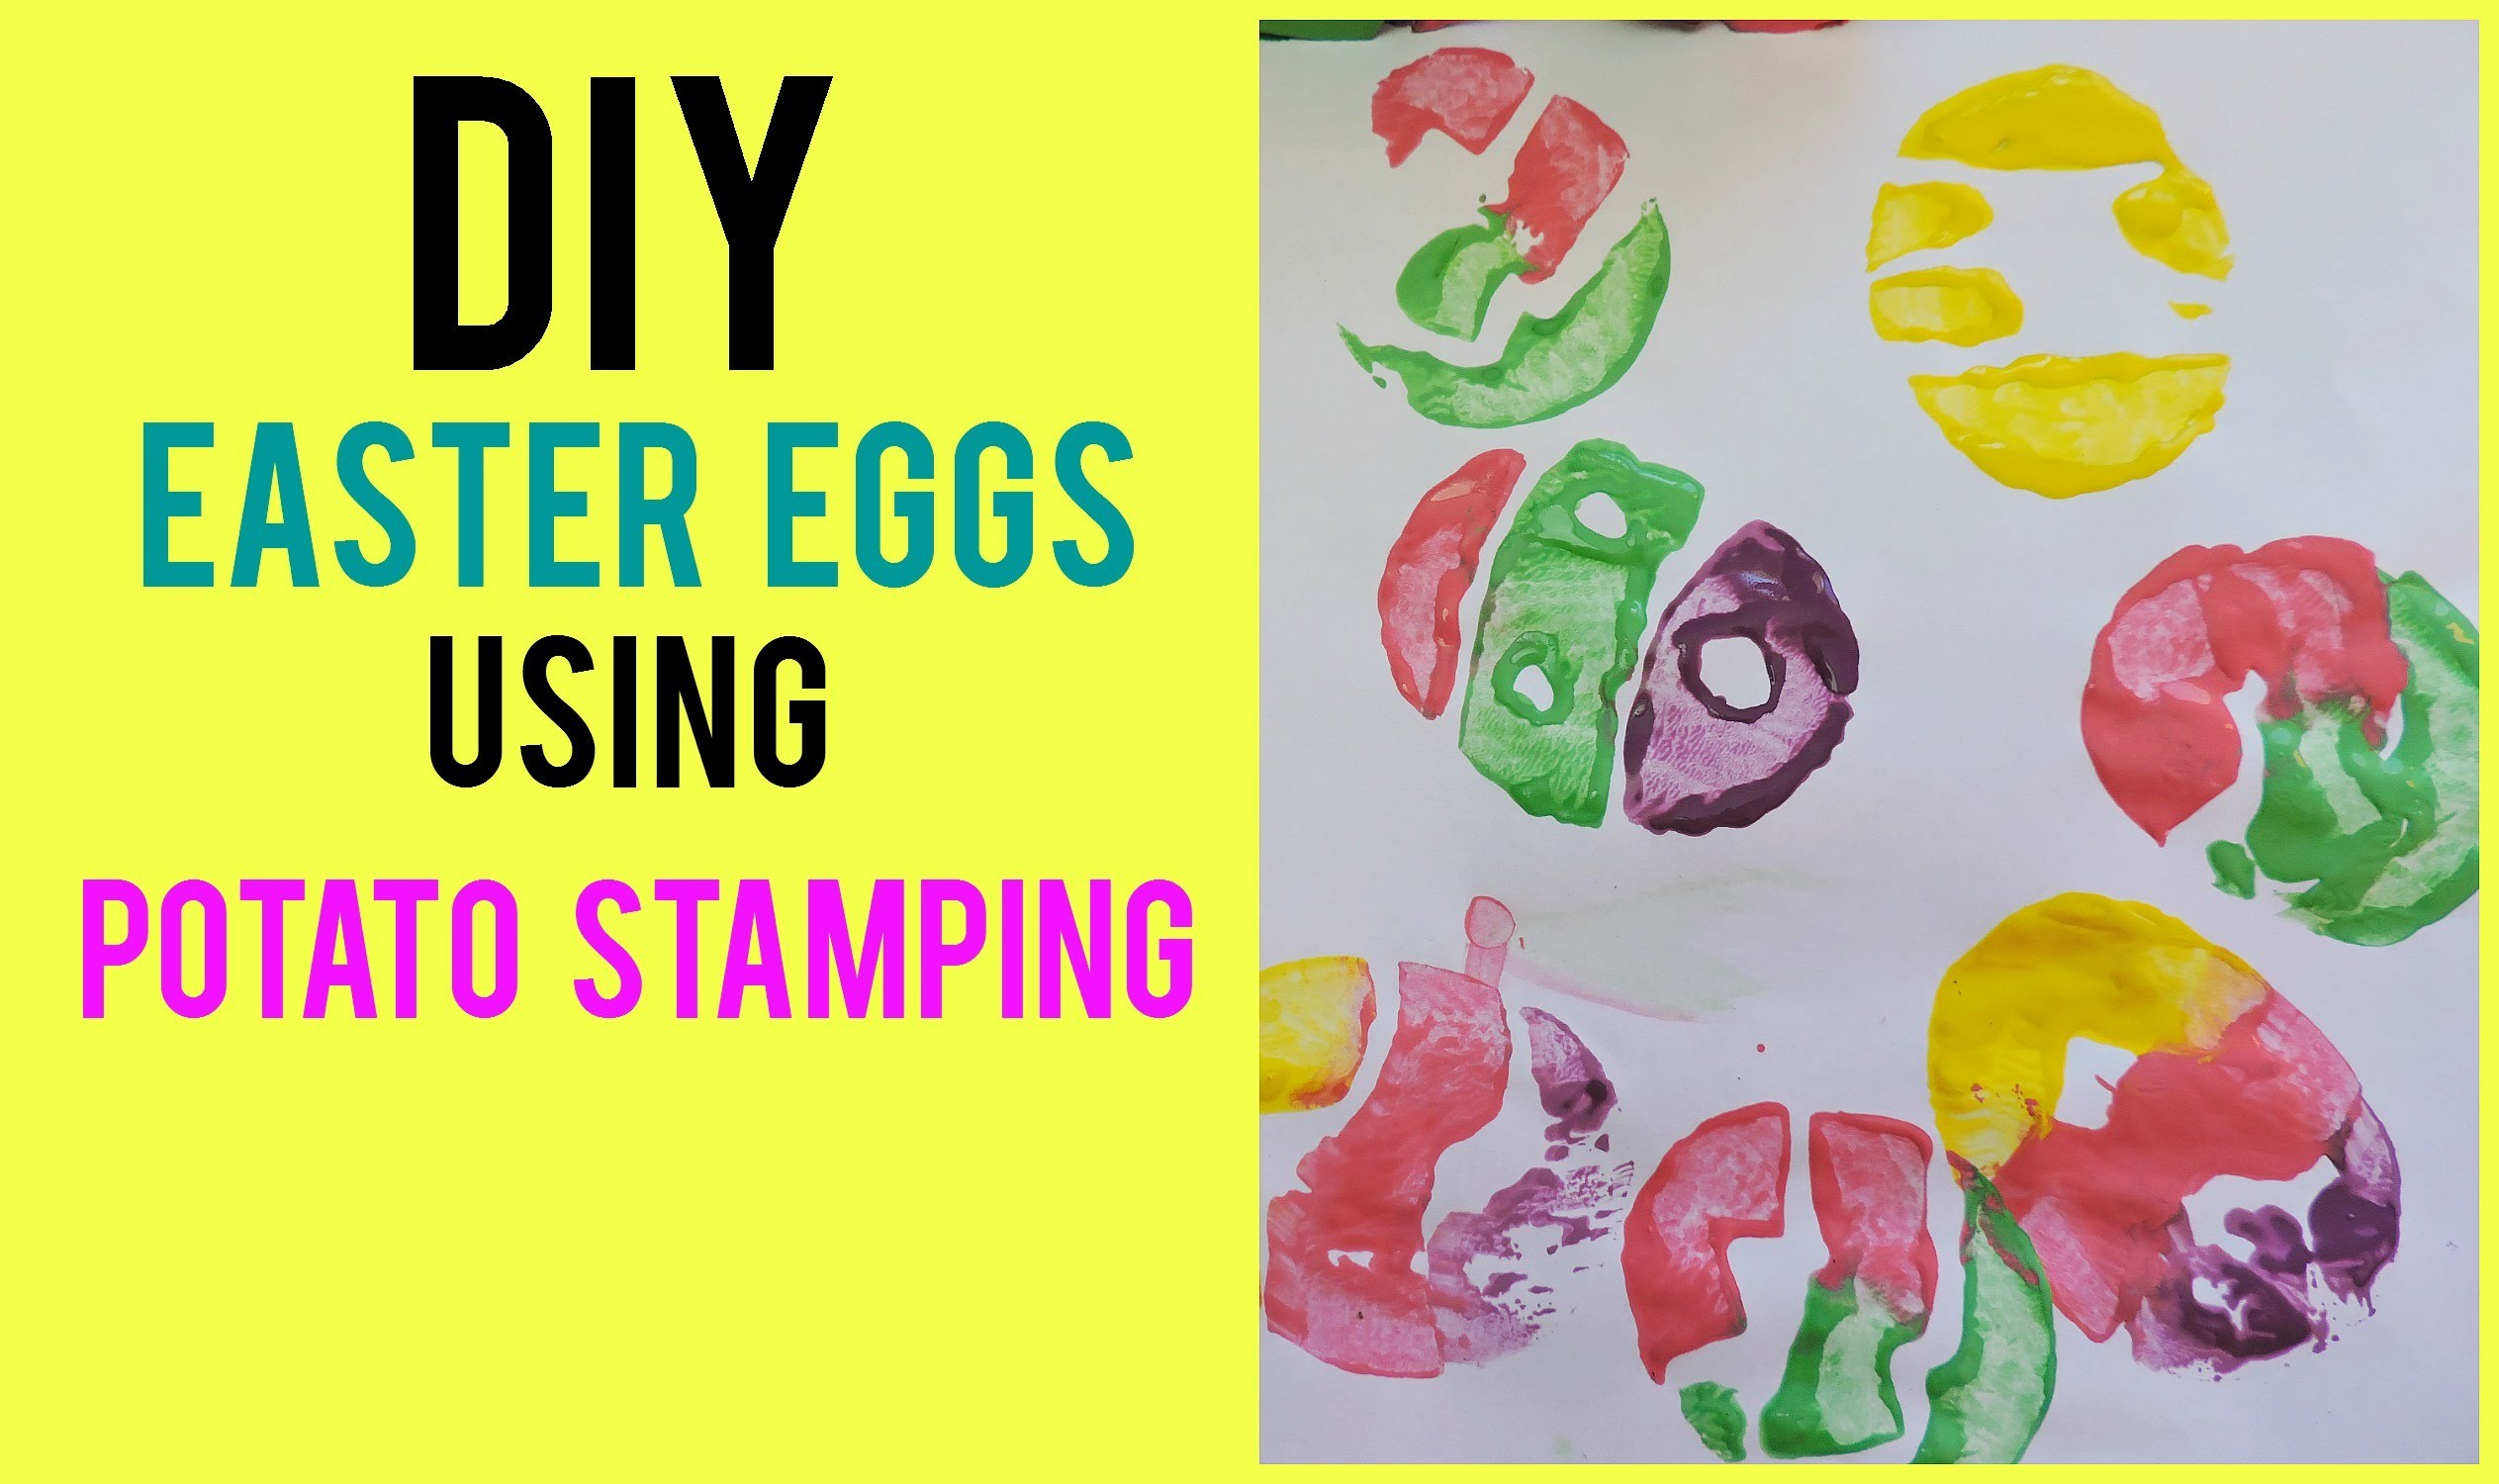 DIY: EASTER EGG POTATO STAMPING